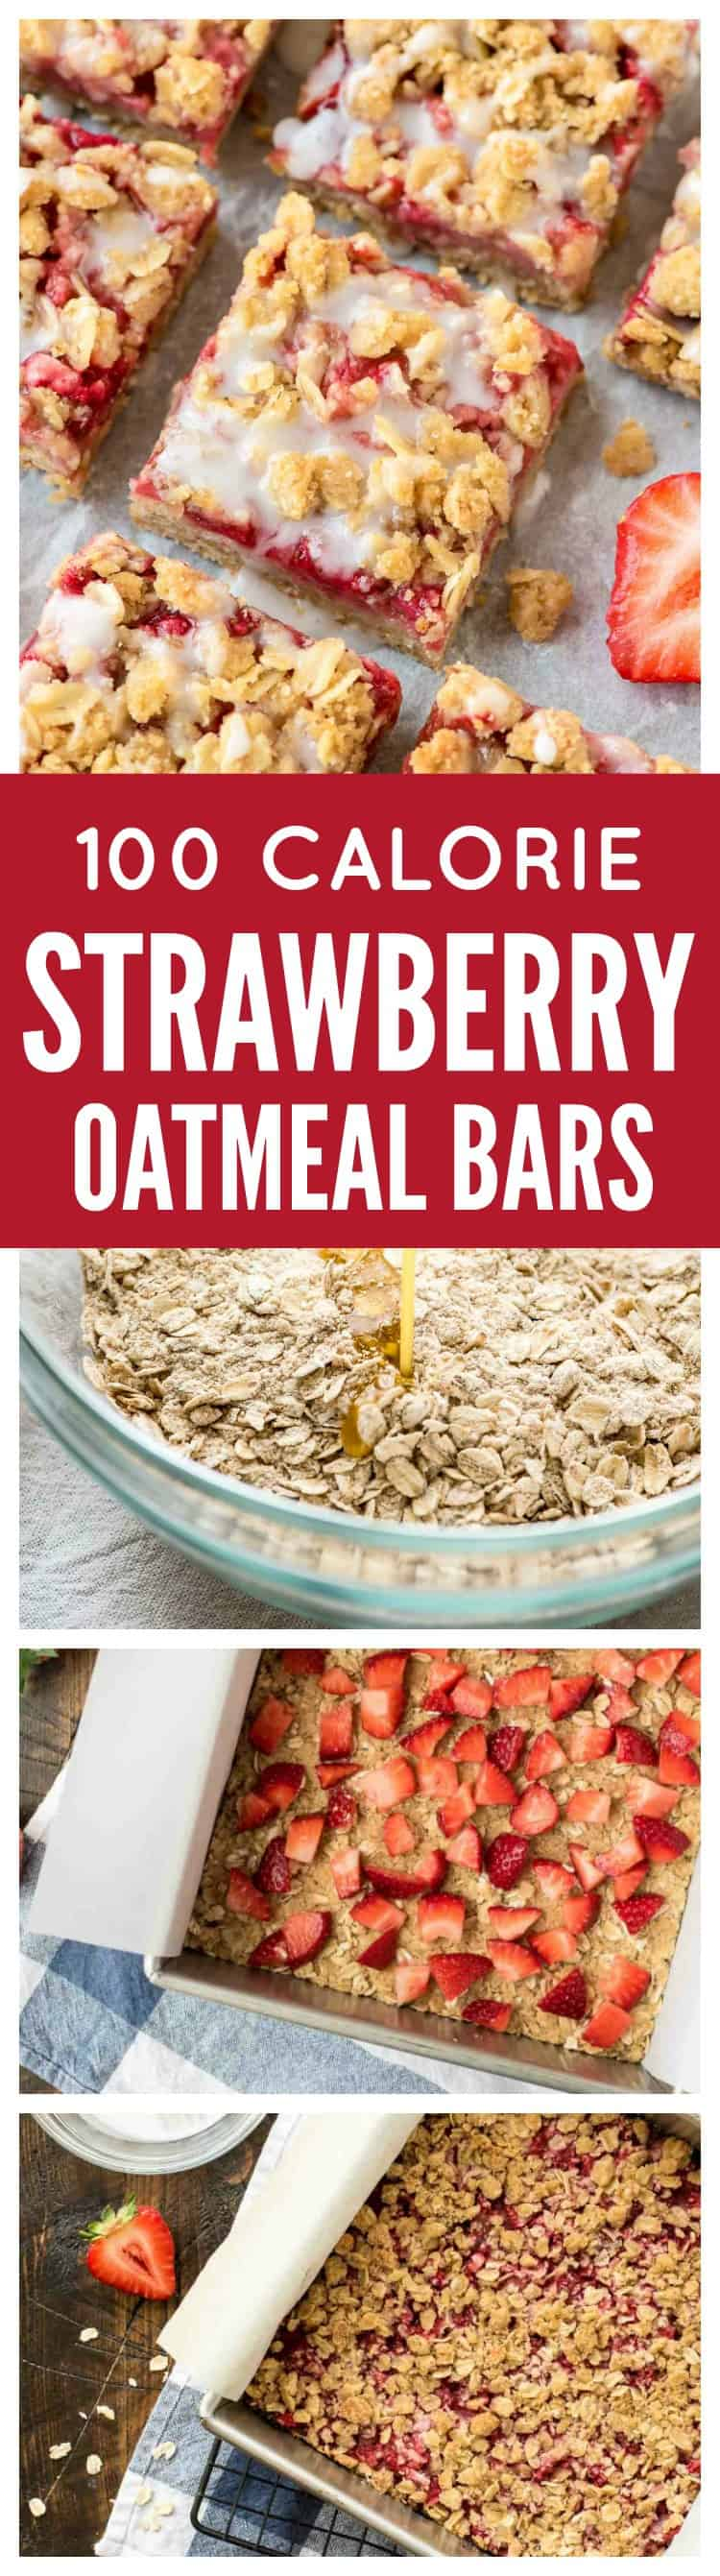 Strawberry oatmeal bars are a healthier fruit dessert, made with fresh strawberries, whole grain butter crumb topping, and a lightly sweetened vanilla glaze. This healthier oatmeal bars recipe is a favorite, because these delicious treats are easy to make and just 100 calories each! @wellplated